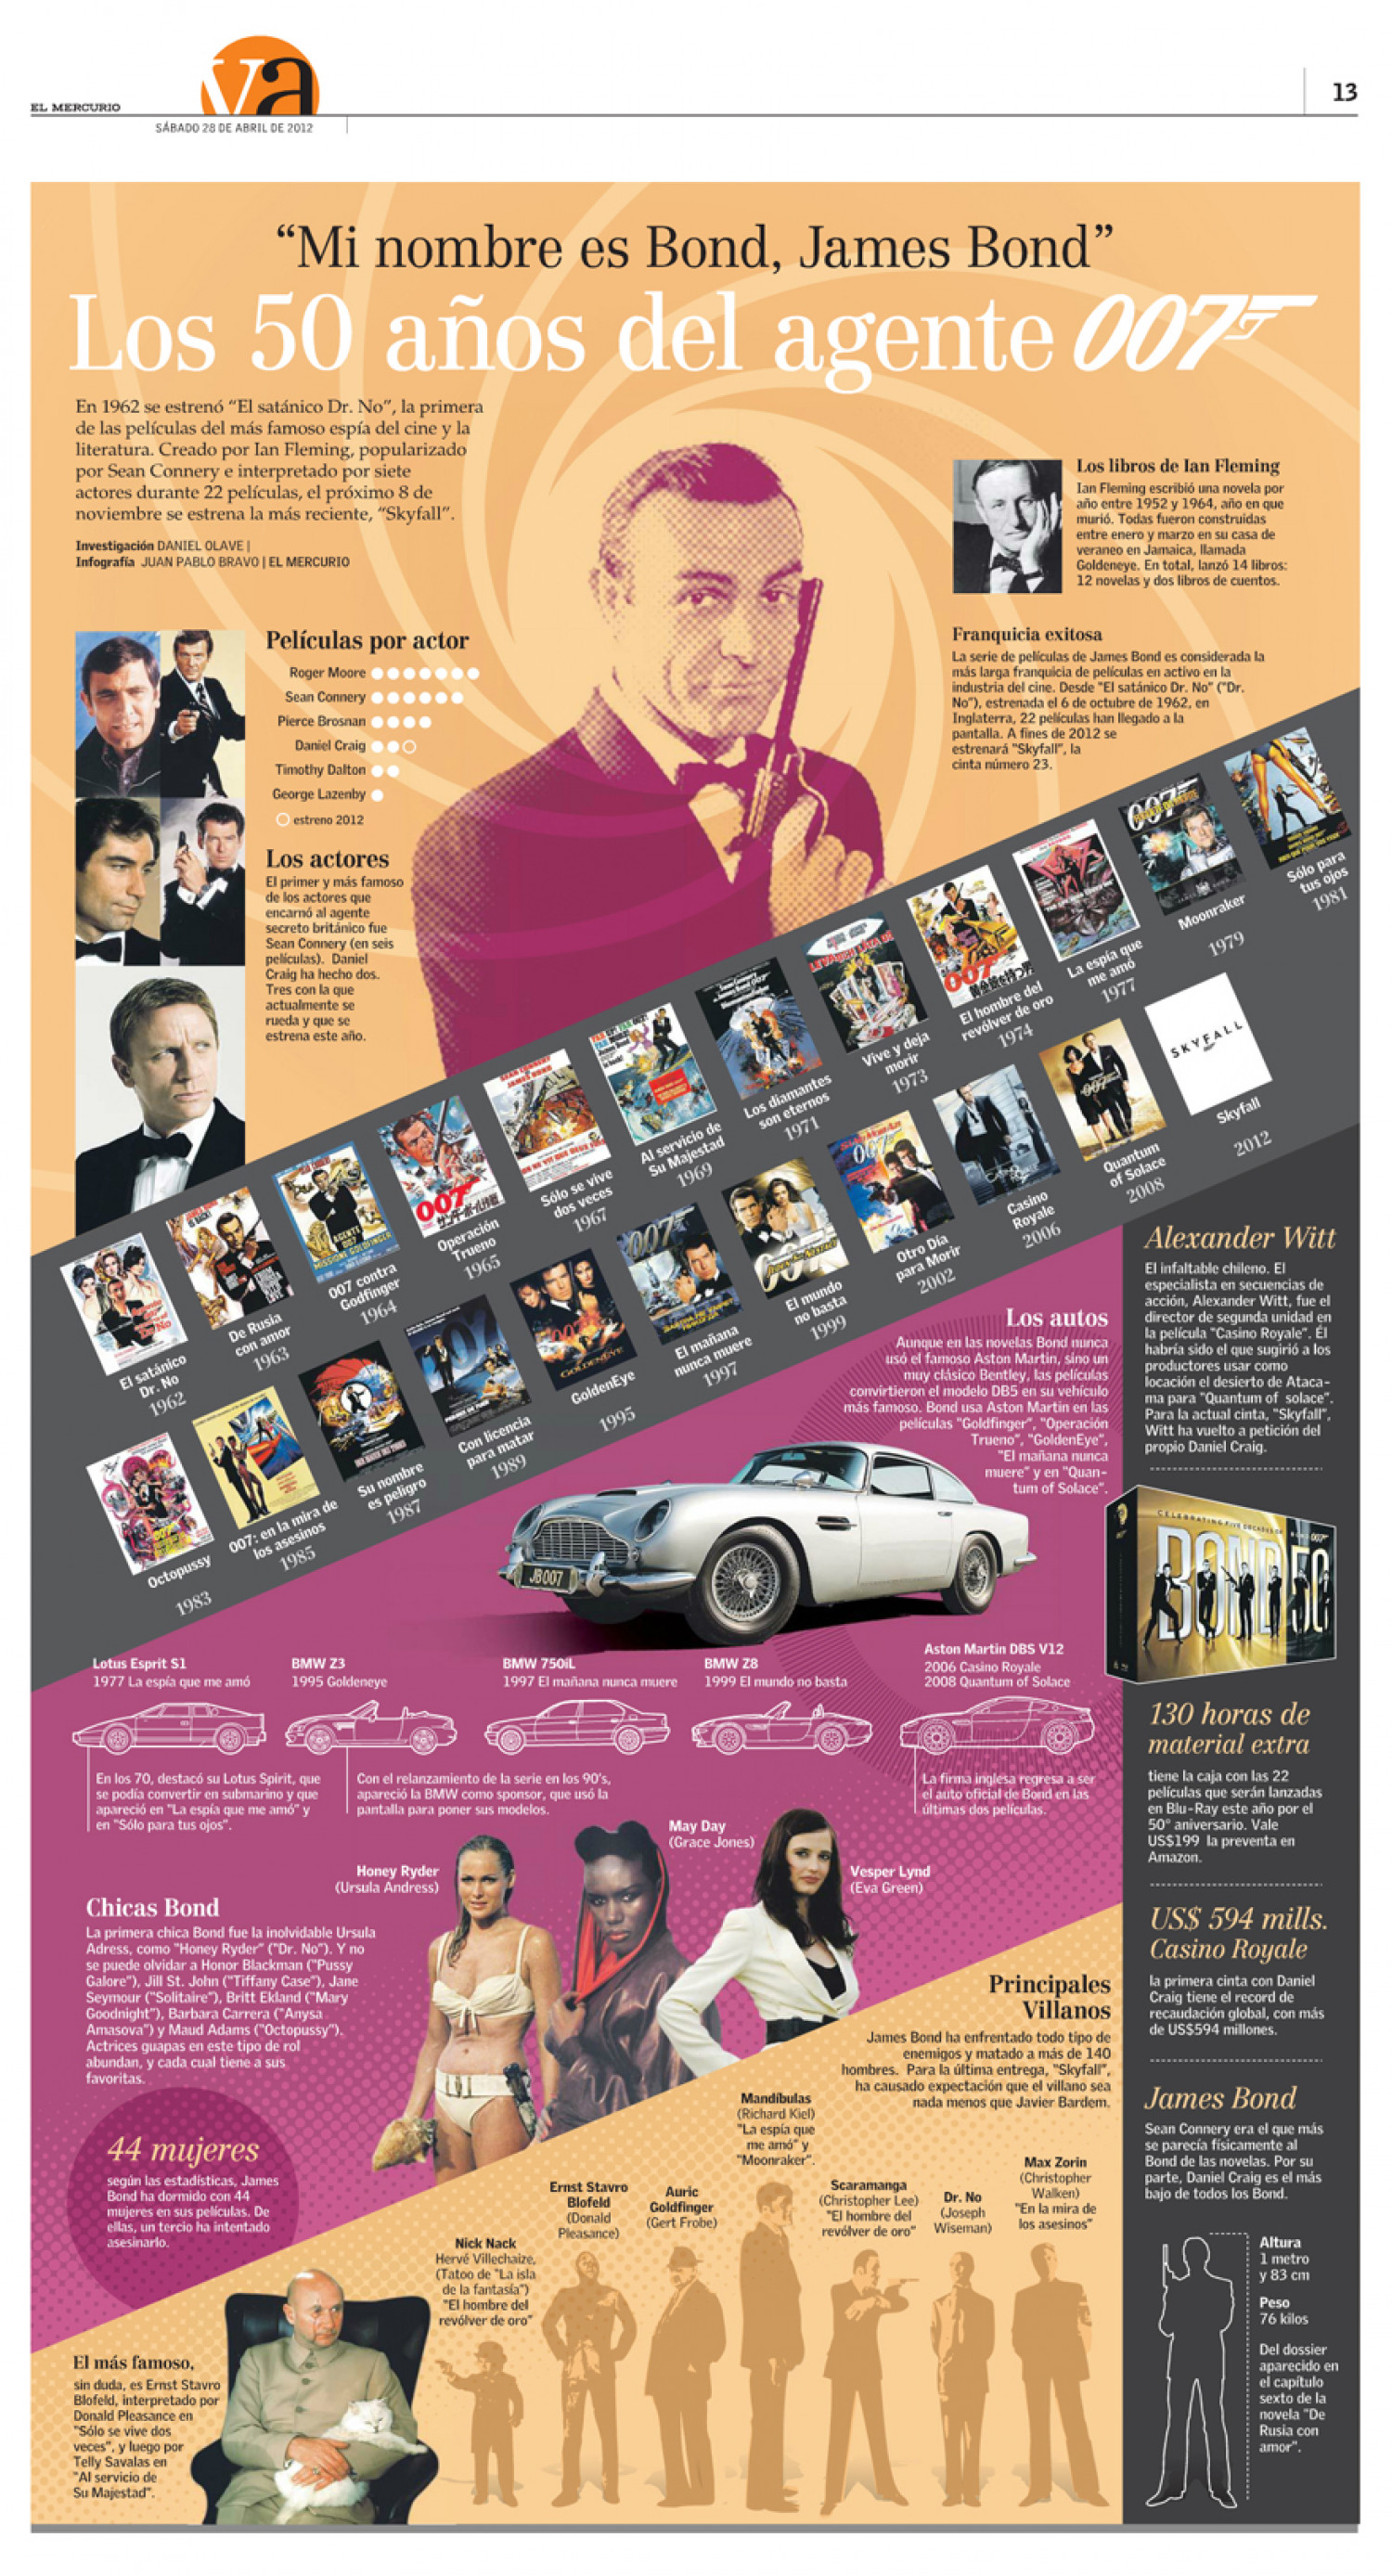 Los 50 años del agente 007 | The fifty years of agent 007 Infographic